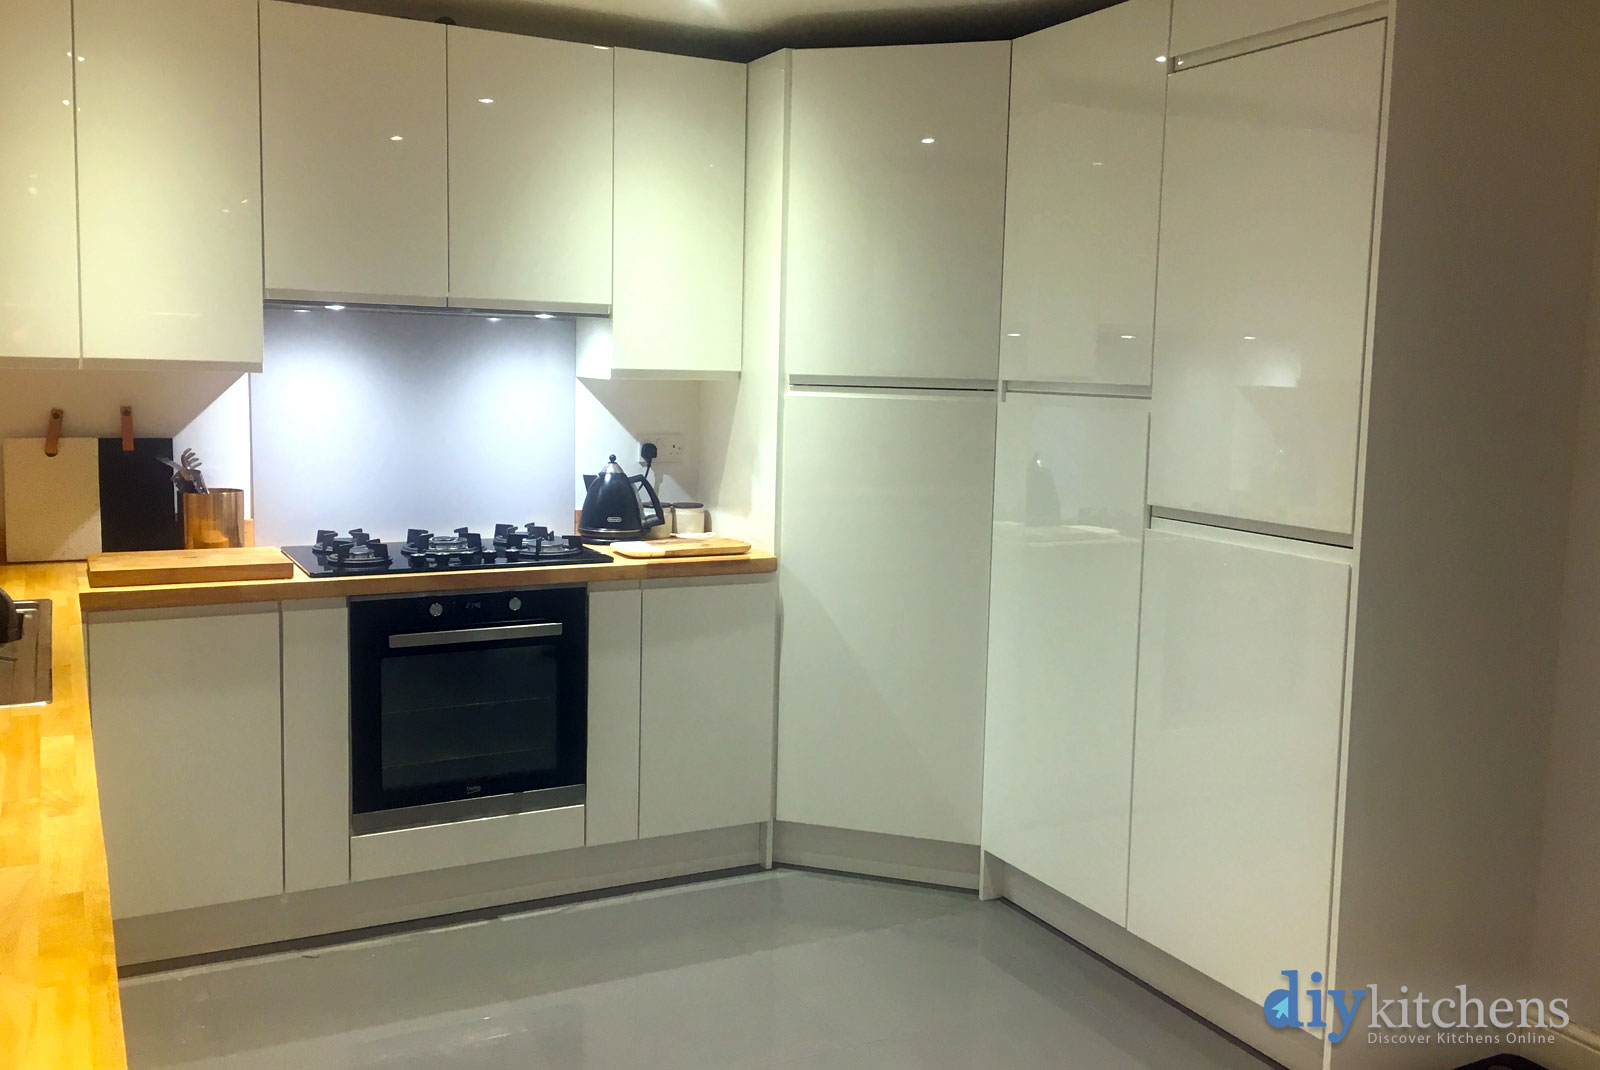 Alex from rugby pictures for you i hope they are useful for Diy kitchens com reviews